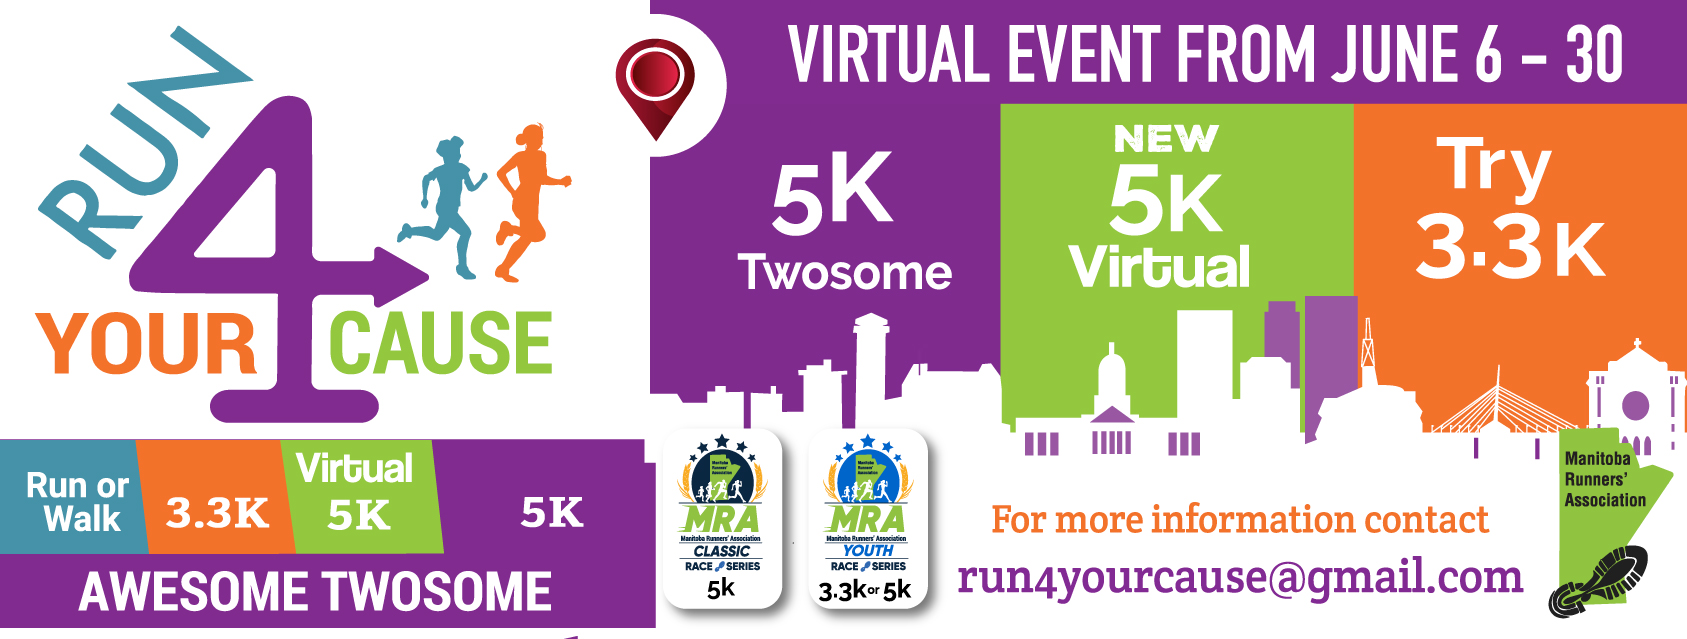 Virtual Run 4 Your Cause 2020